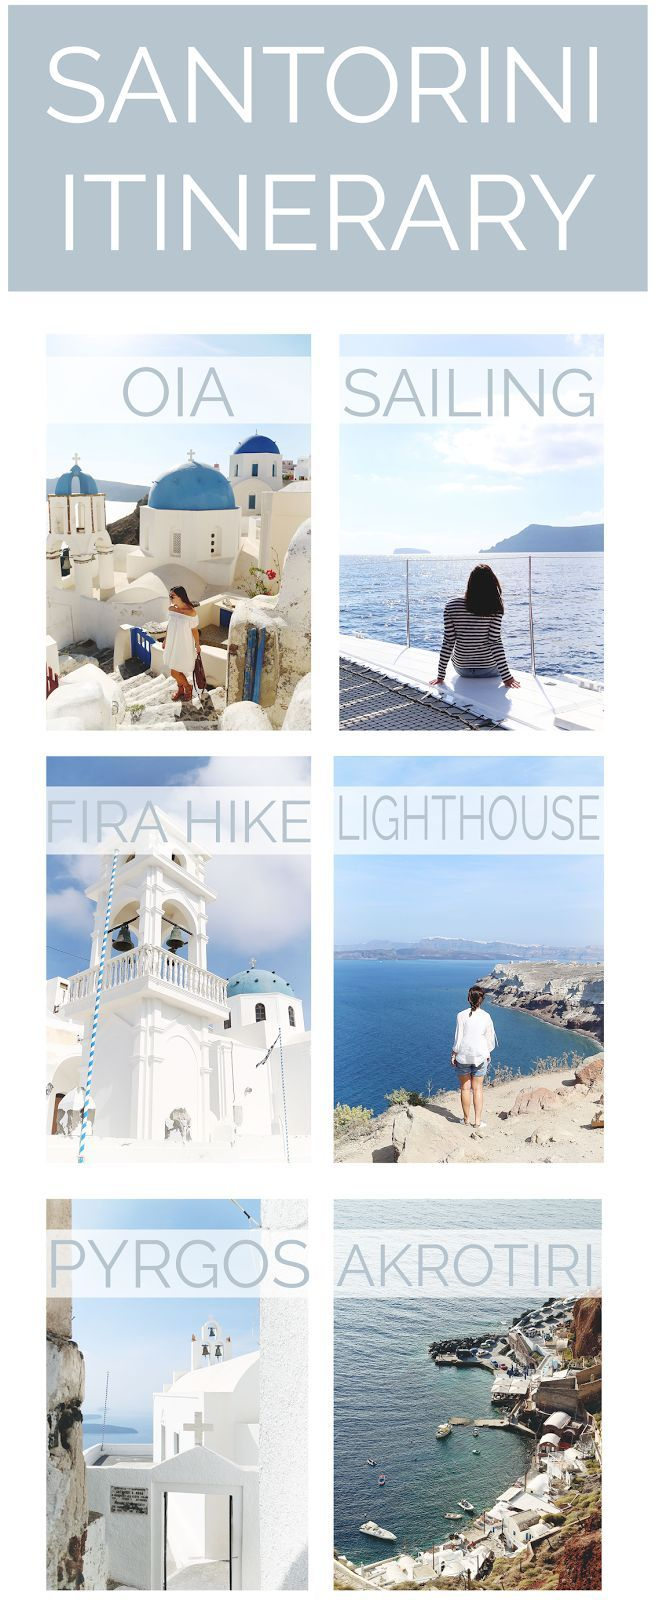 Best Santorini Italy Ideas On Pinterest Trips To Greece - 10 things to see and do on your trip to santorini greece